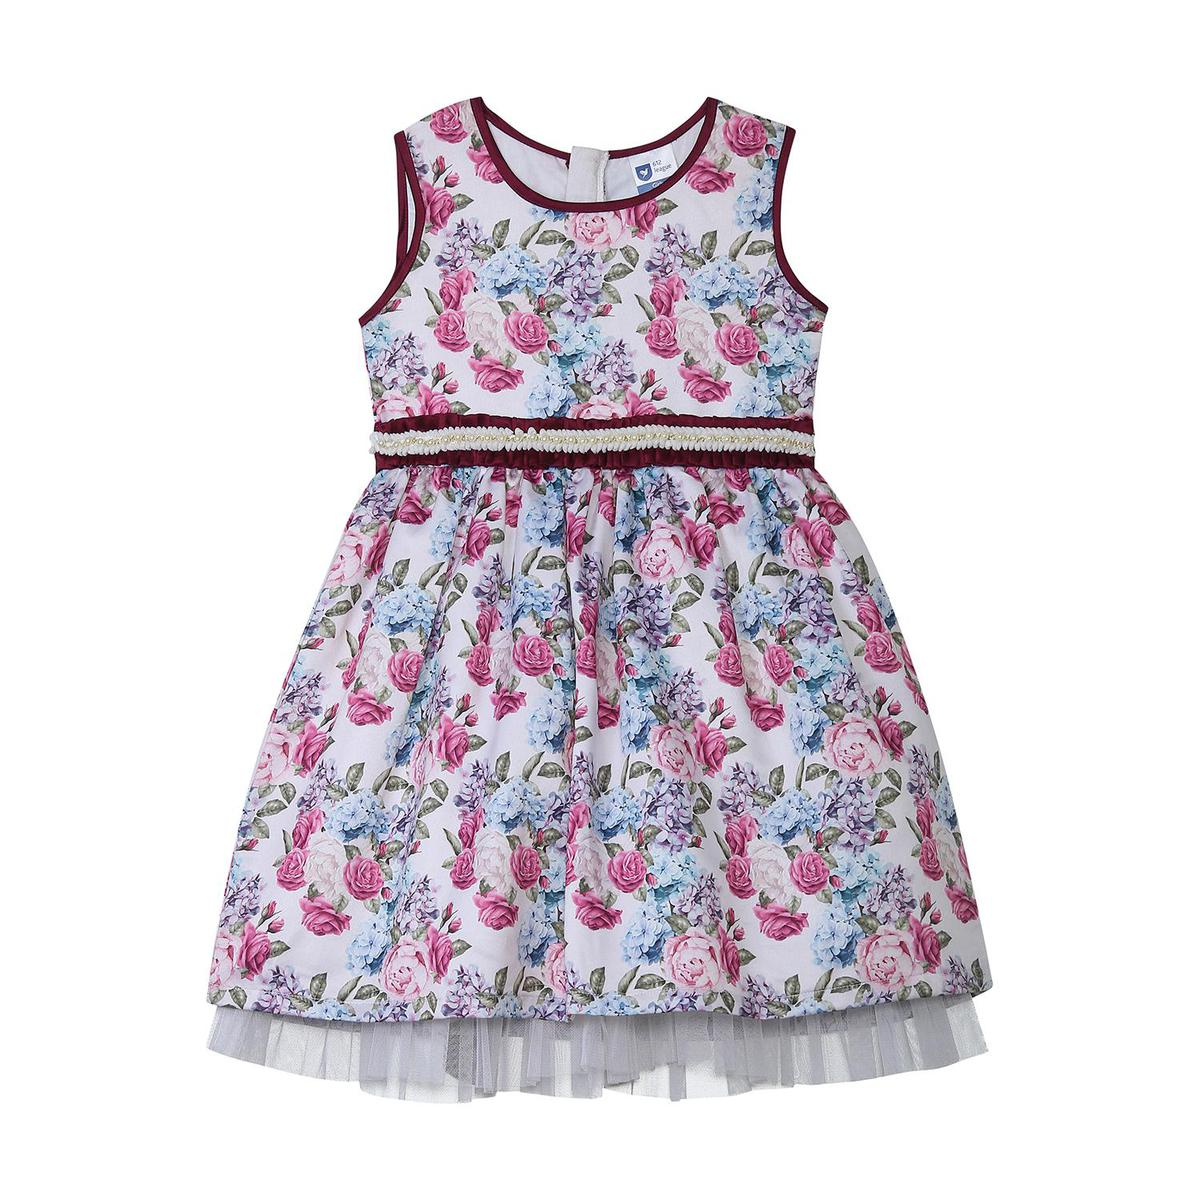 612 League - White Colored Floral Cotton Satin Dress For Girls